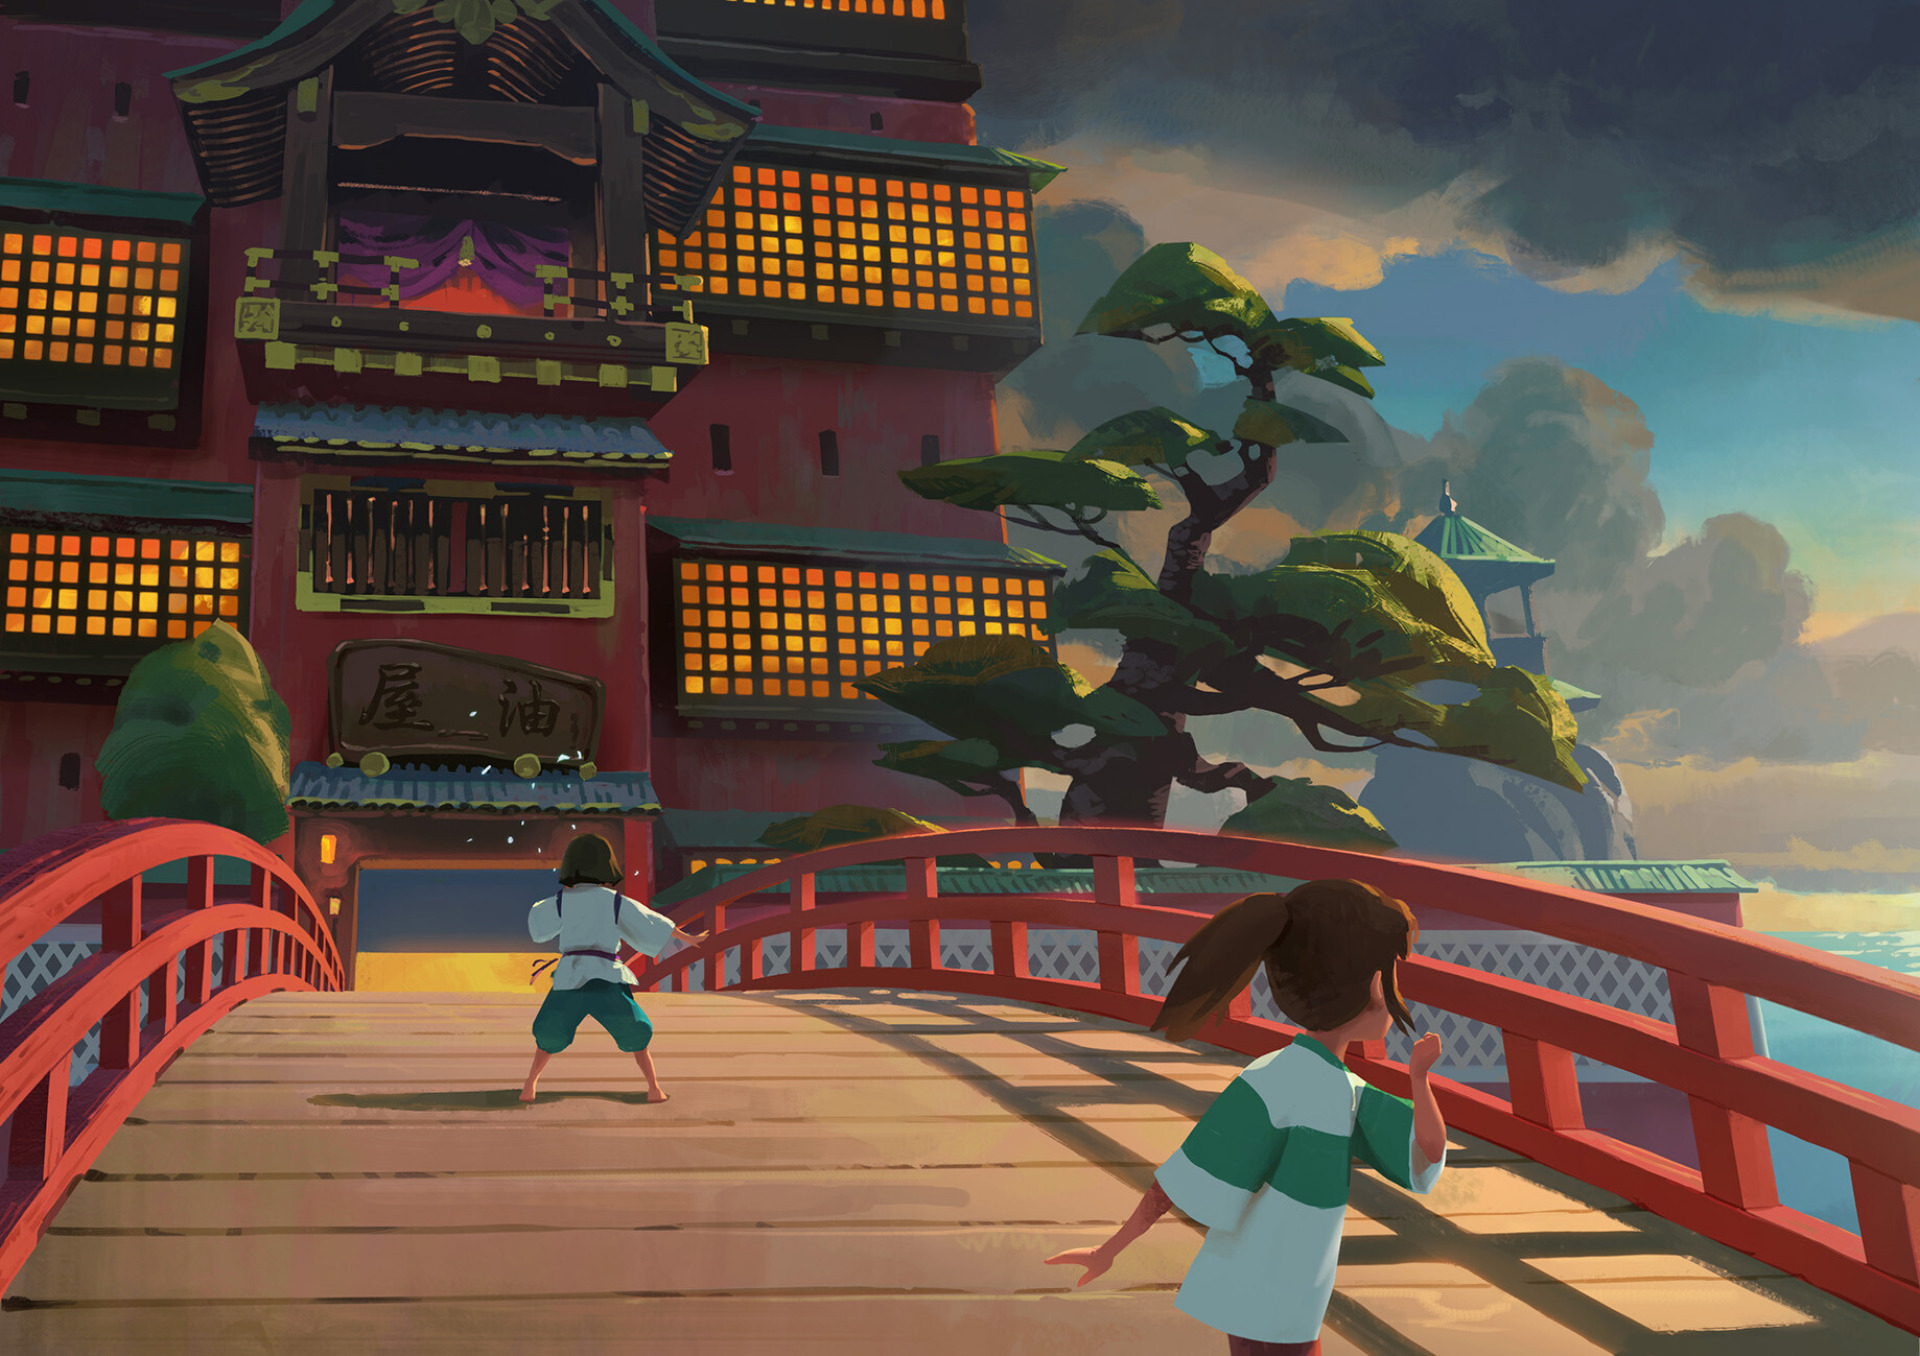 Haku And Chihiro On The Bridge Leading To The Bathhouse Hd Wallpaper Background Image 1920x1356 Id 1062086 Wallpaper Abyss